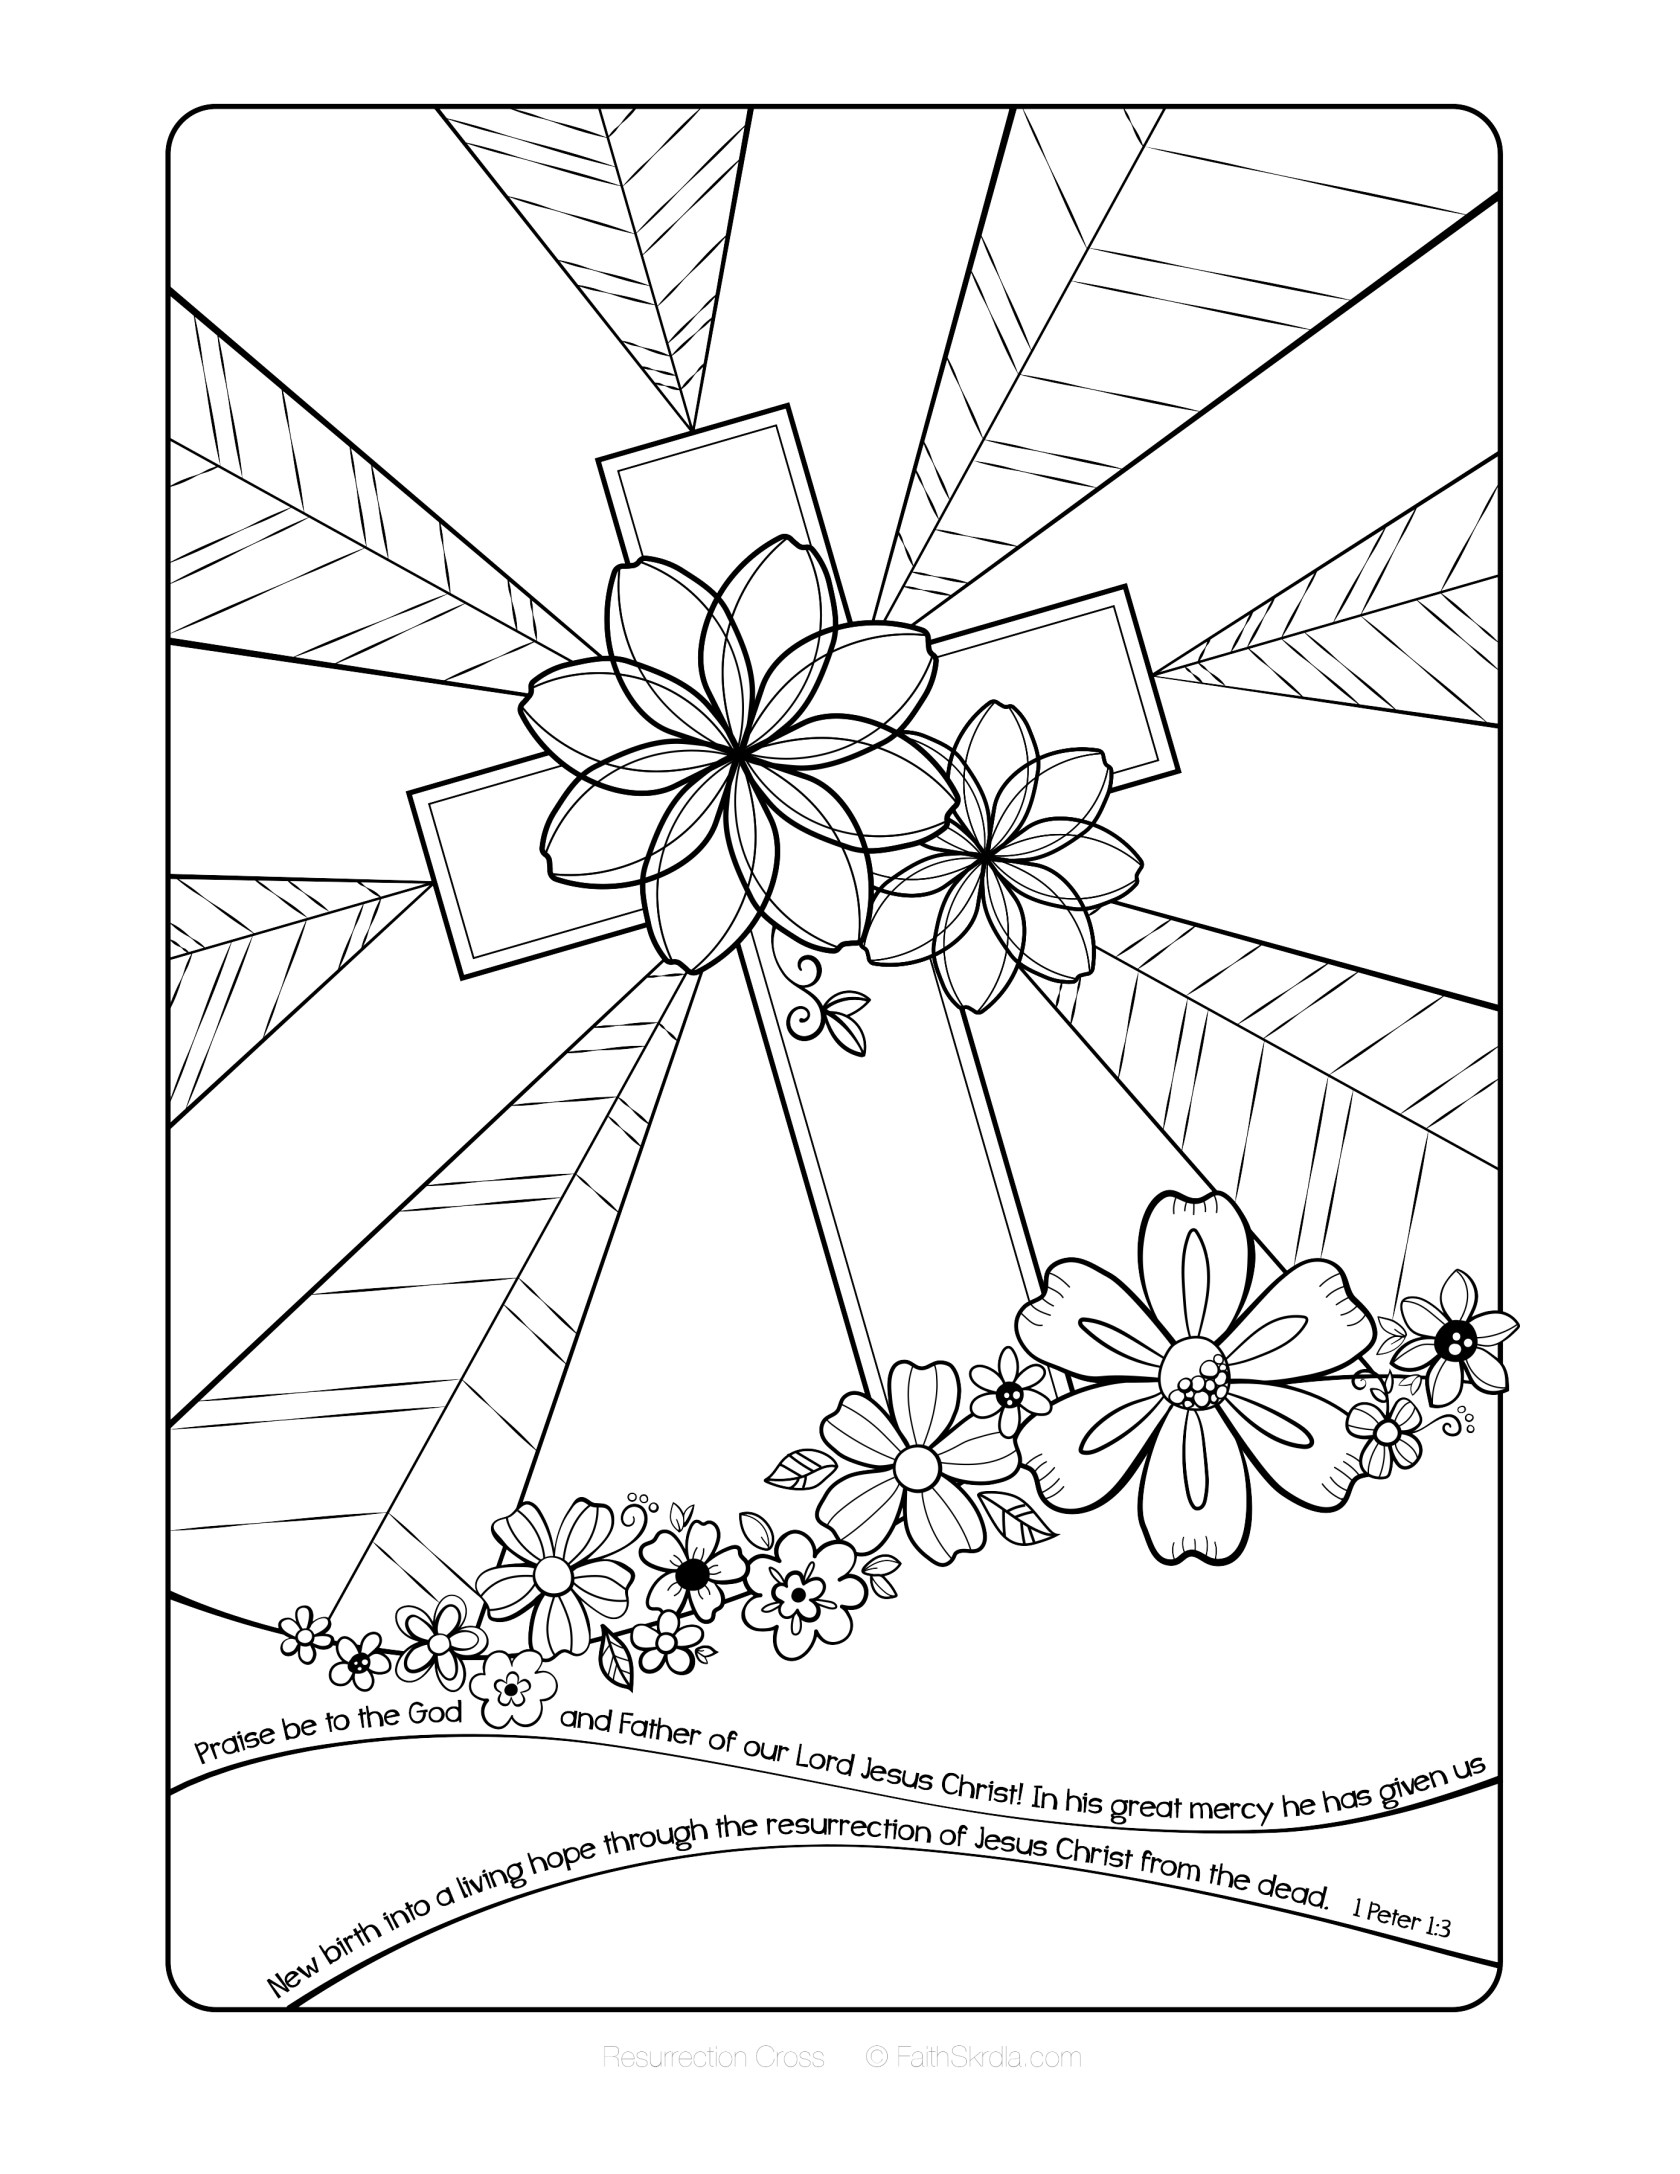 sunday school lesson coloring pages Download-Free Easter Adult Coloring Page by Faith Skrdla Resurrection Cross 1 Peter 1 3 Bible Verse Christian coloring page for adults and grown up kids 16-b